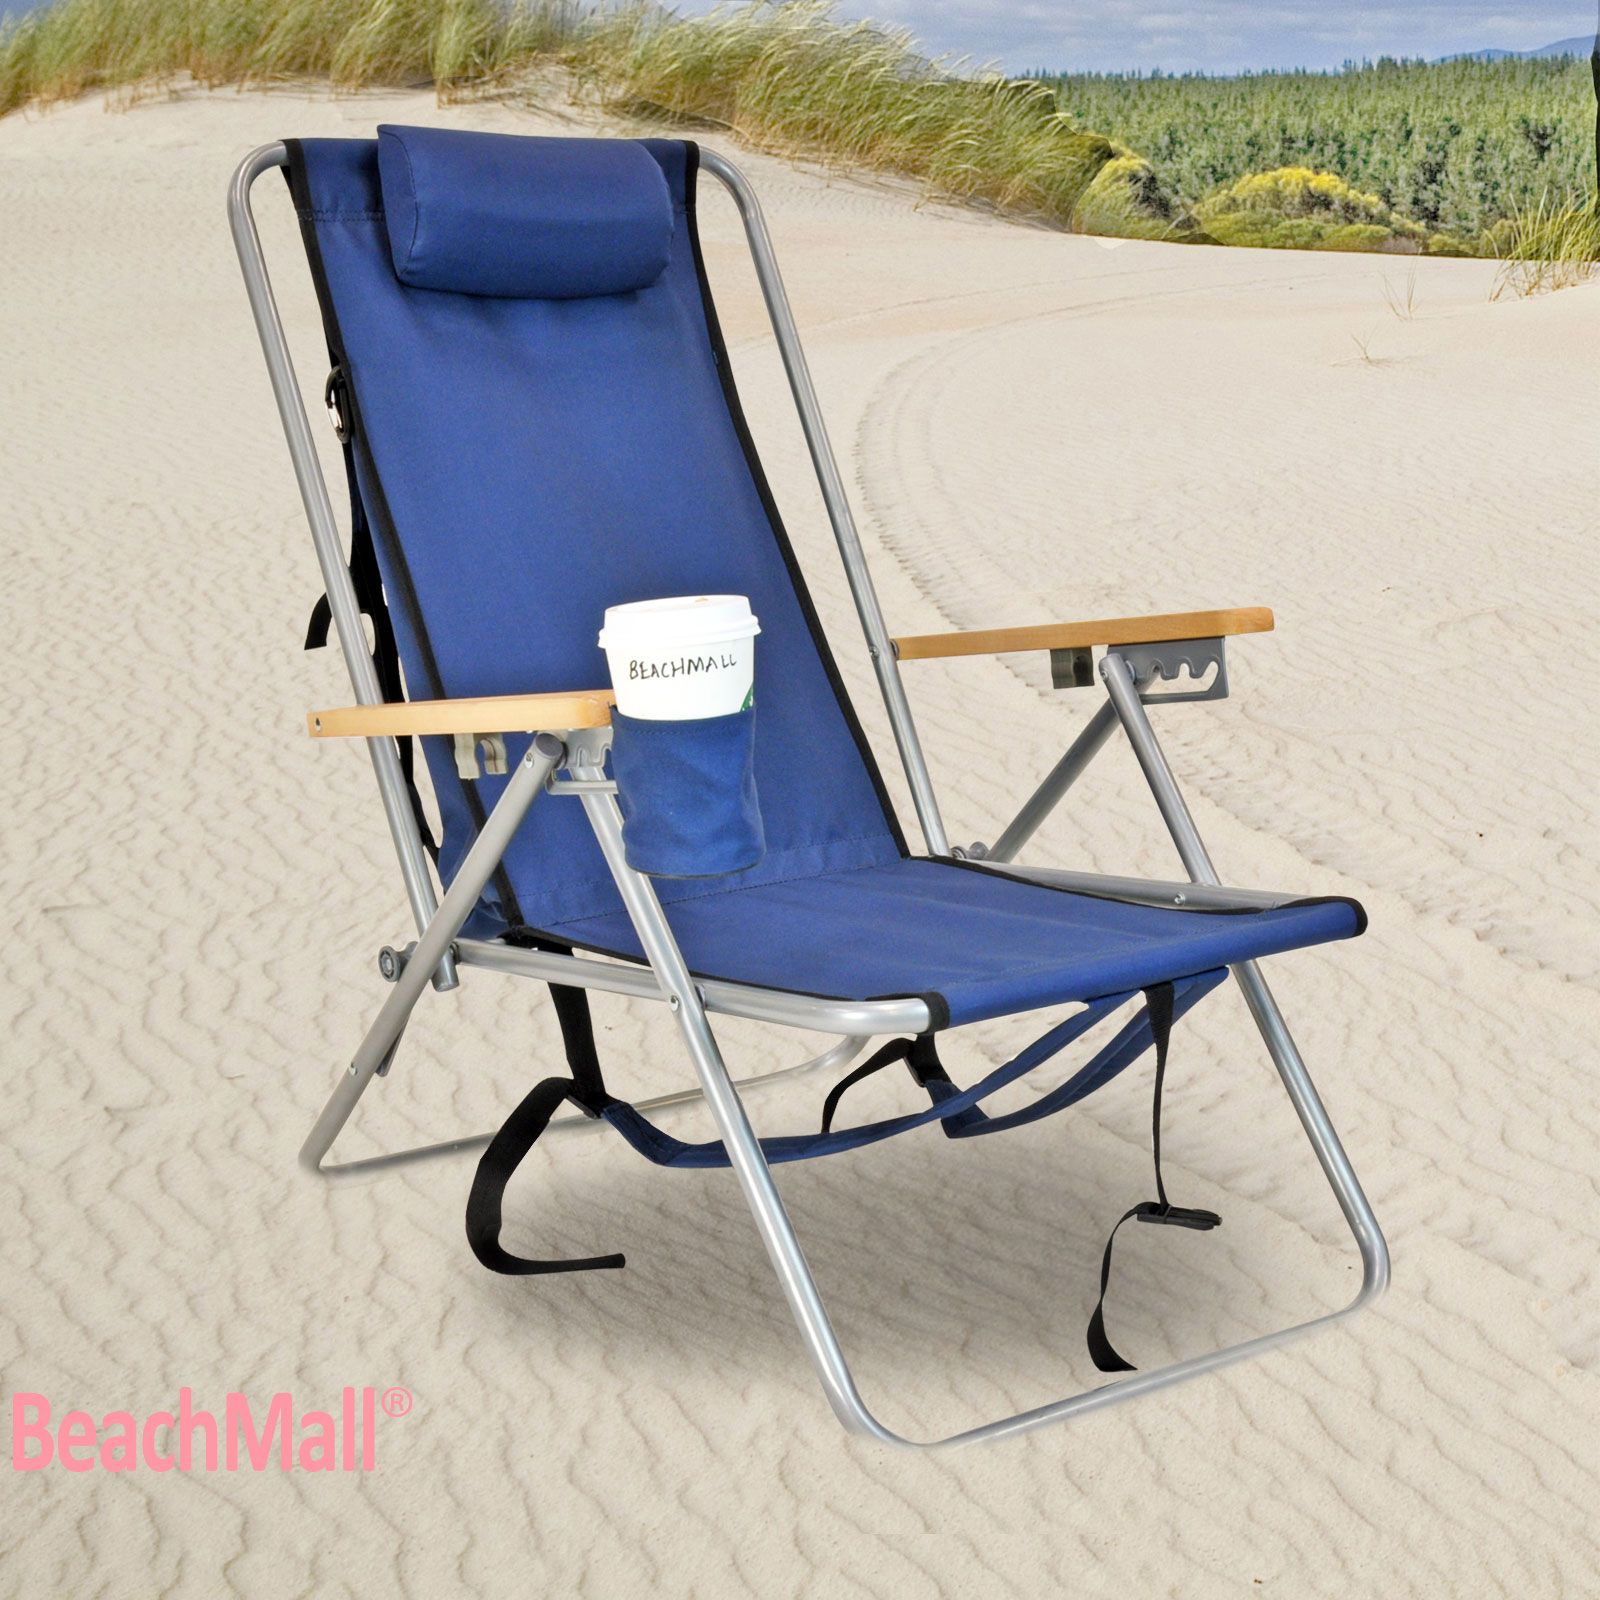 low beach chairs walmart chair covers hire wetherill park backpack wearever by rio holds upto 250lbs